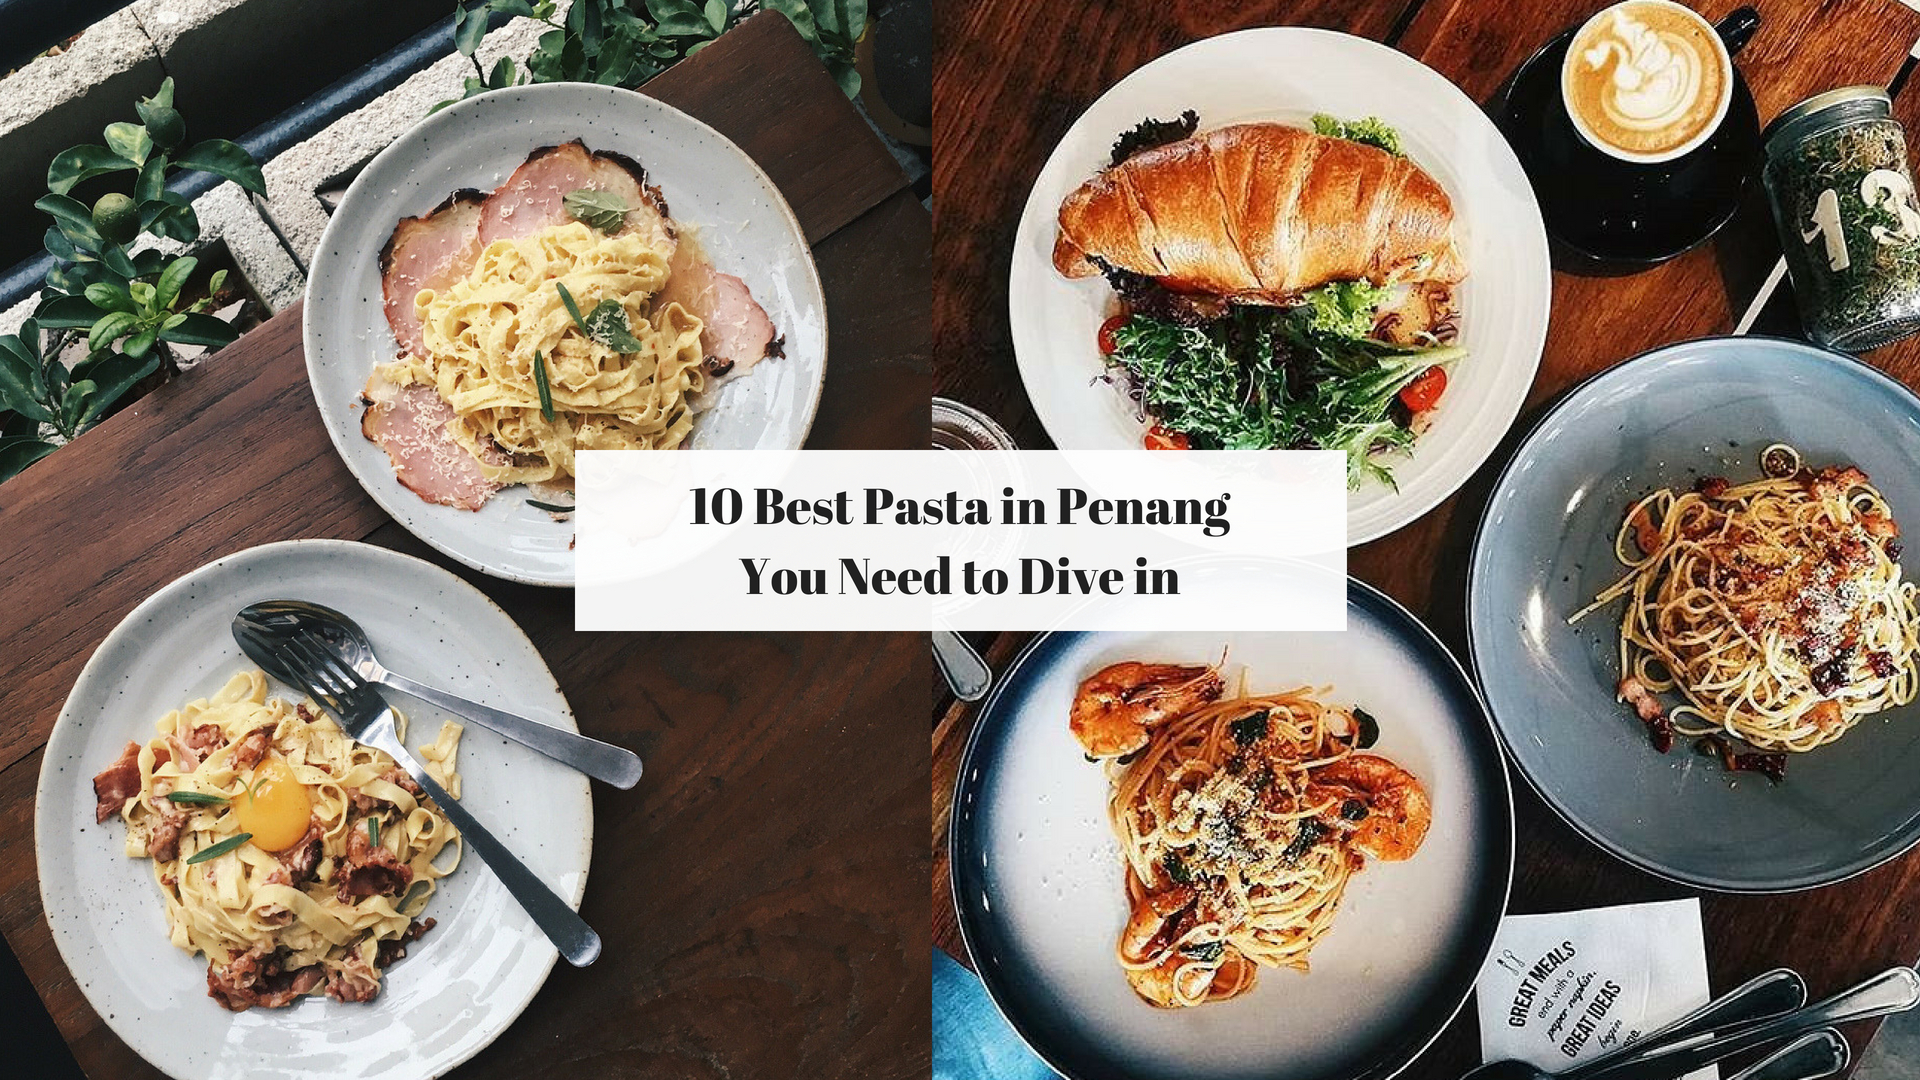 10 Best Pasta in Penang You Need to Dive in - Penang Foodie